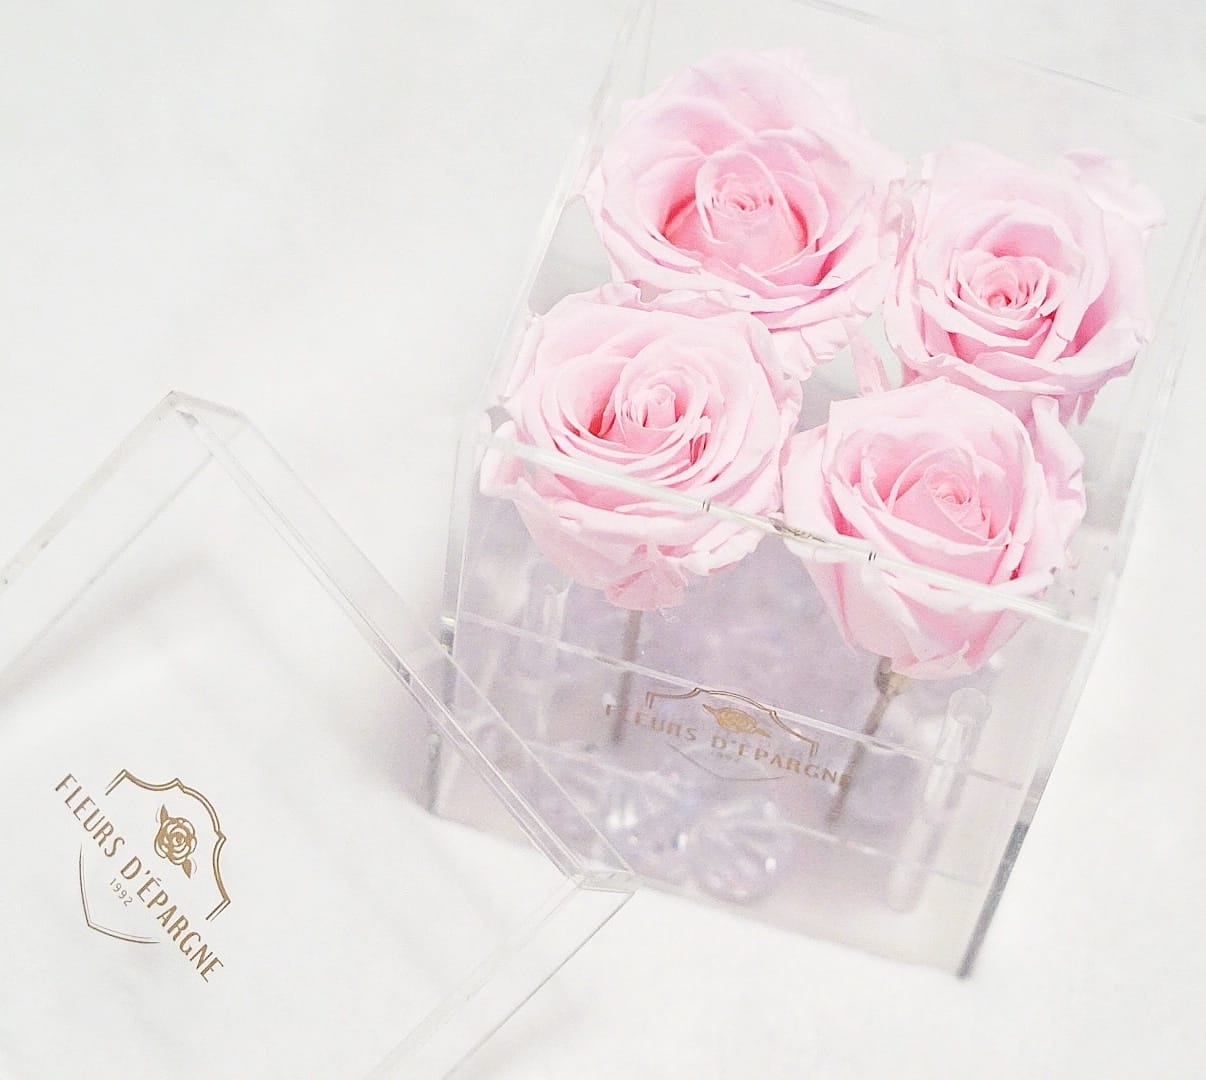 Jumbo 4 Rose Crystal Box - 3 Years